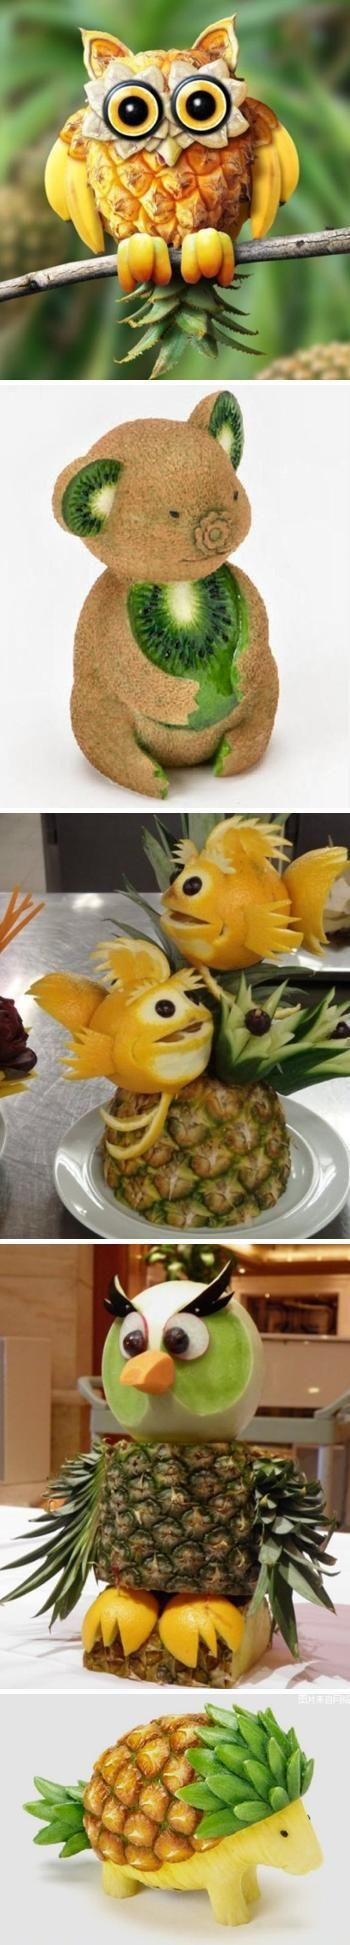 Lifelike creative fruit animal sculptures